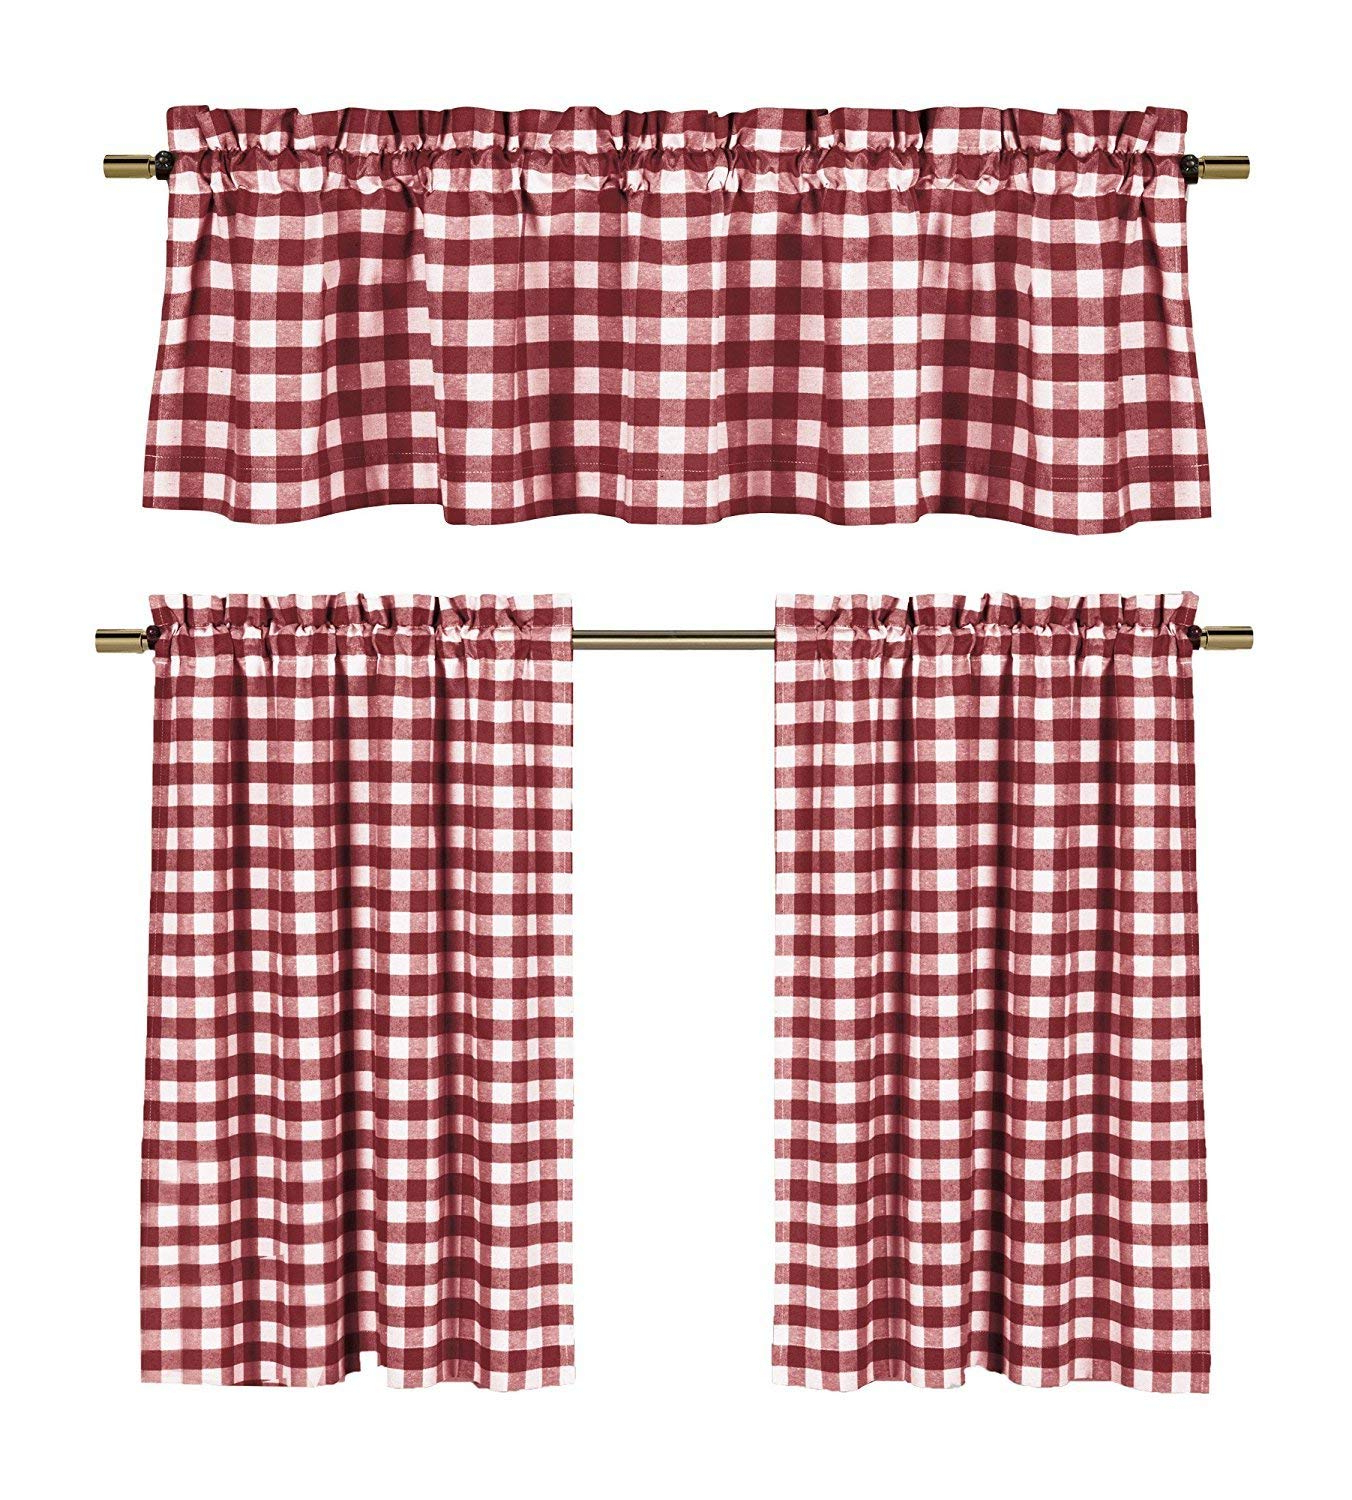 3 Piece Cotton Rich Small Kitchen Window Set: Gingham Check Design, One  Valance, Two Tiers 24 In Long (Burgundy And White) For Favorite Kitchen Burgundy/white Curtain Sets (Gallery 14 of 20)